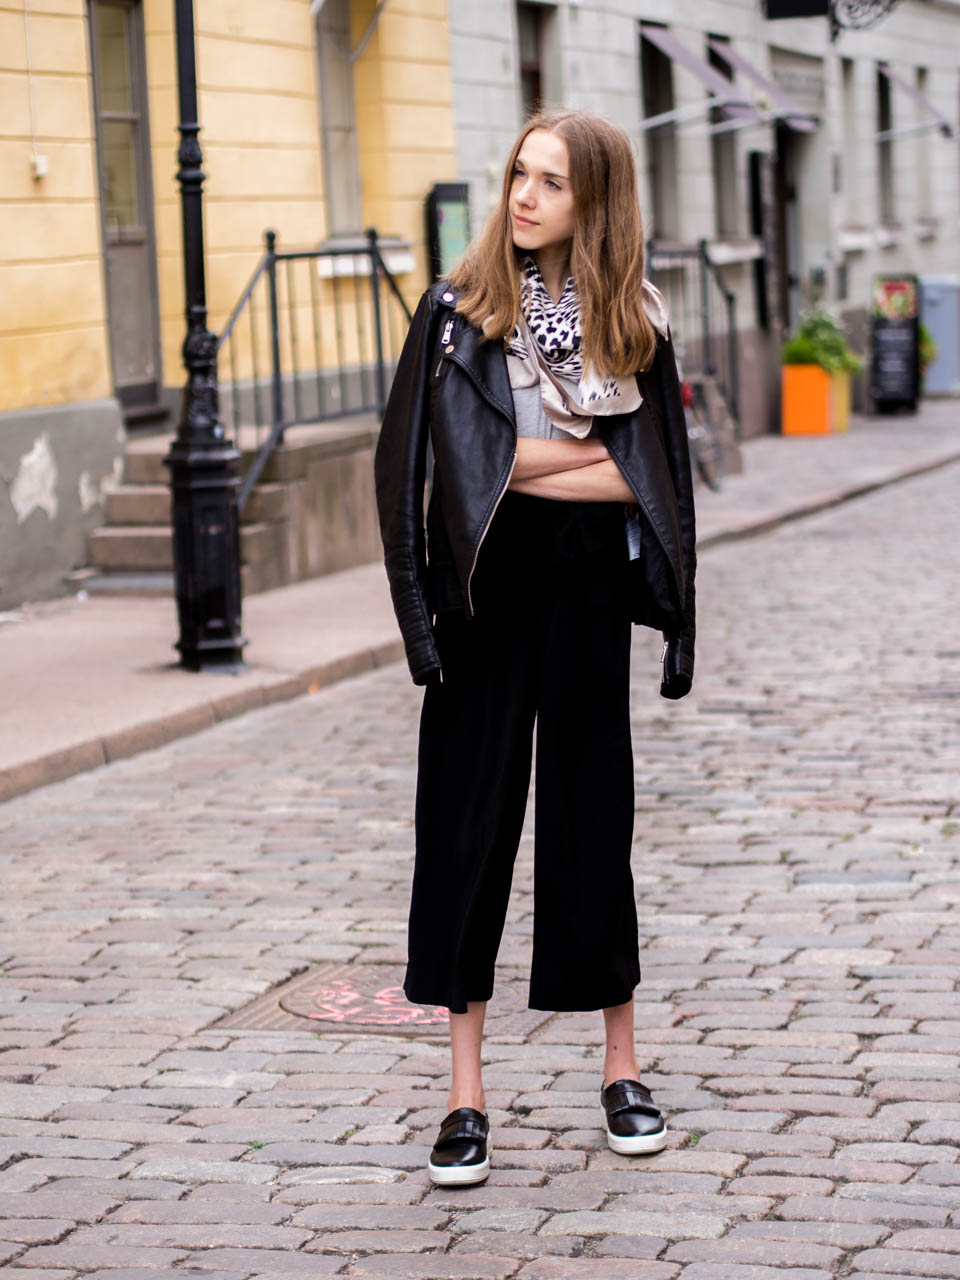 business-women-impostor-syndrome-fashion-blogger-autumn-outfit-inspiration